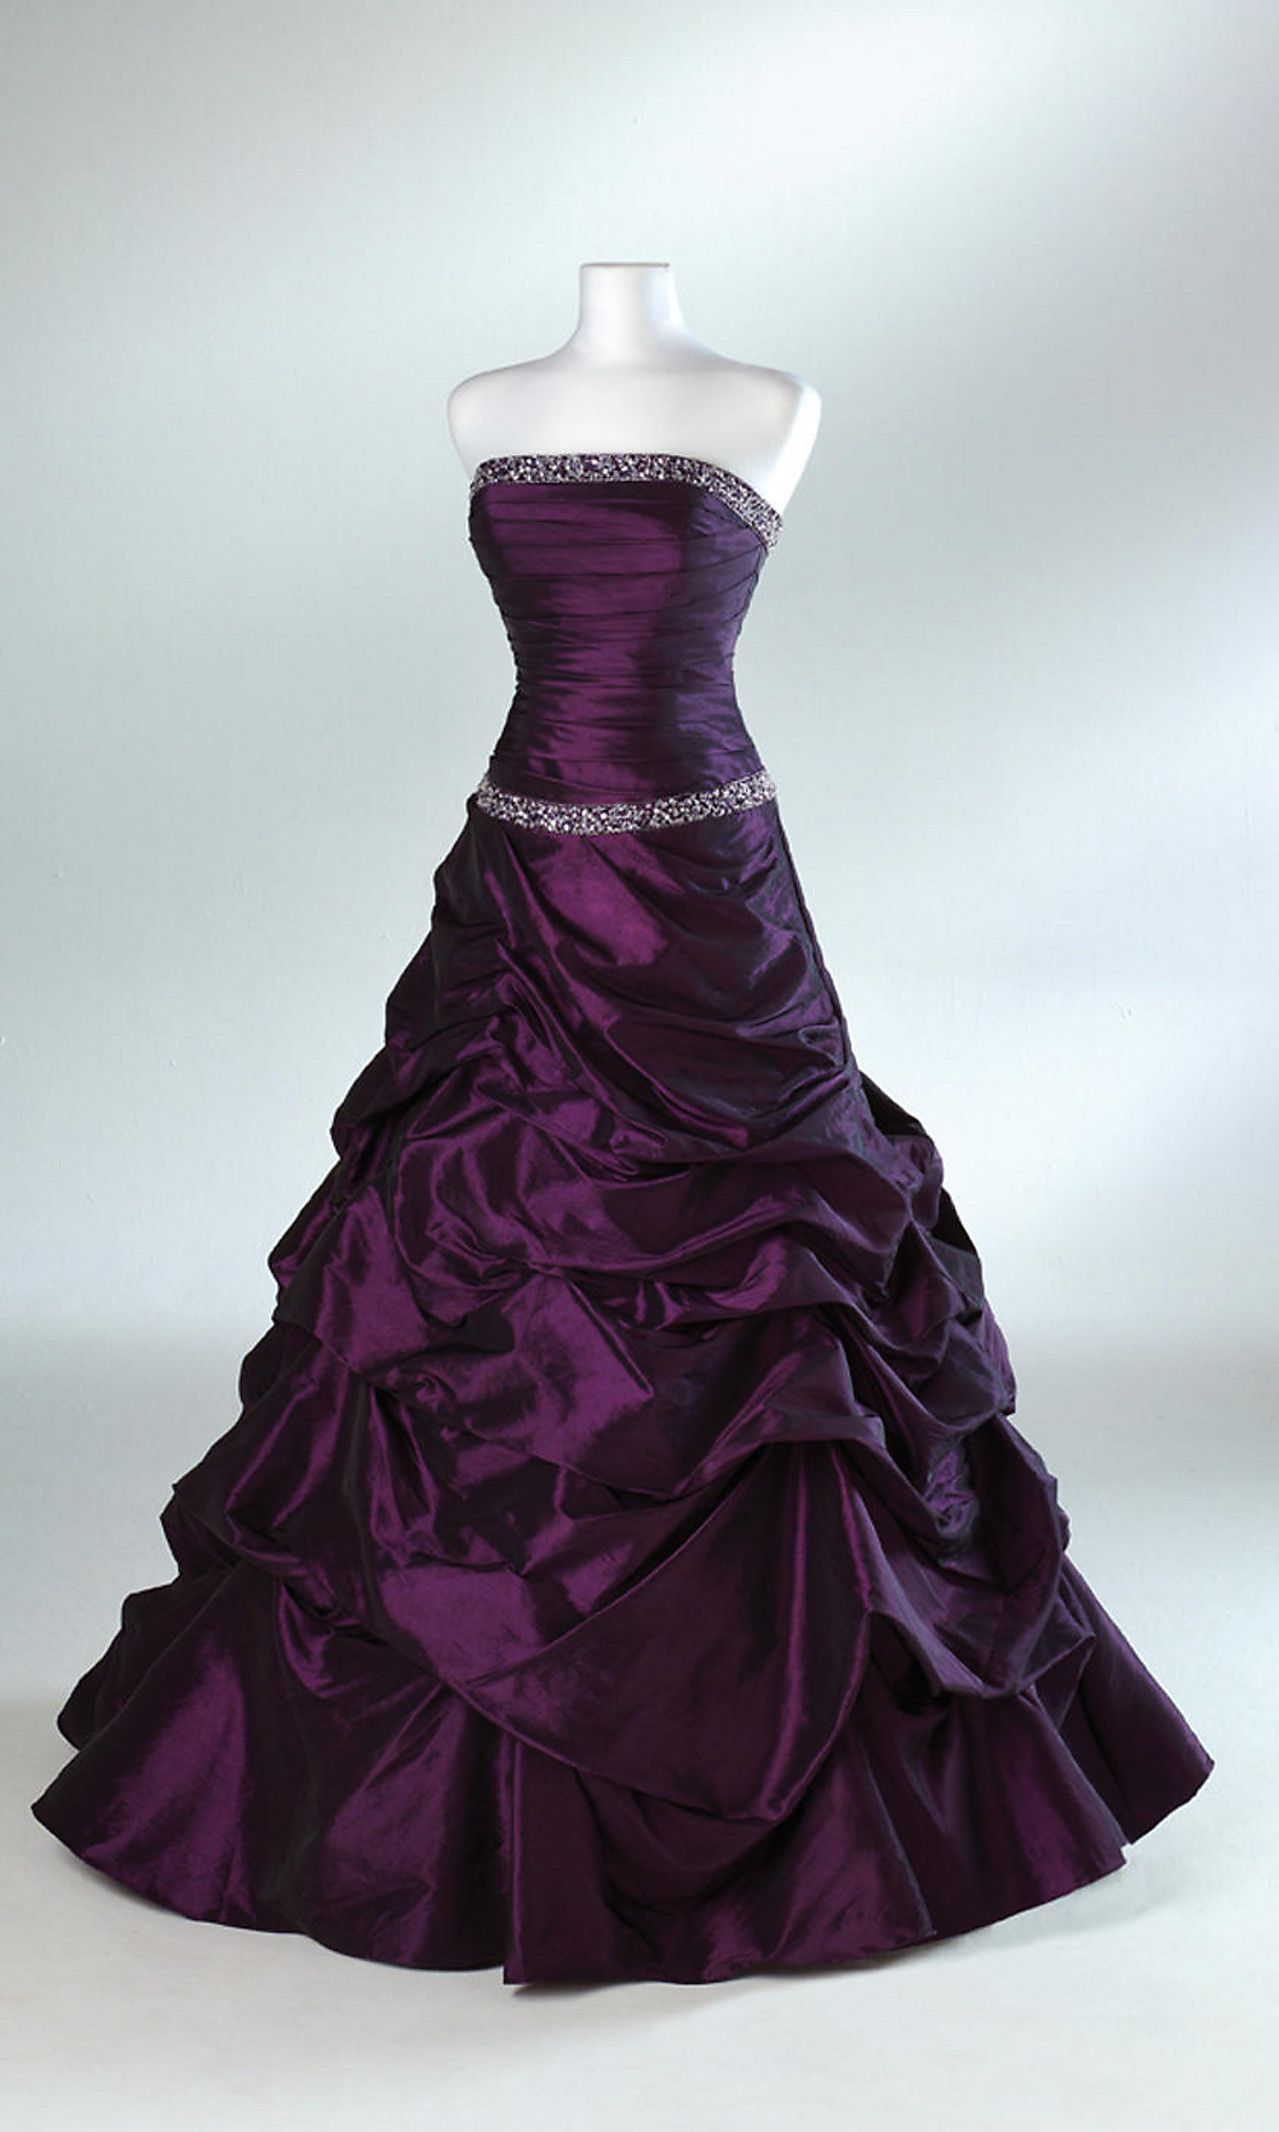 Plum strapless ball gown dress Pinterest Ball gowns Gowns and